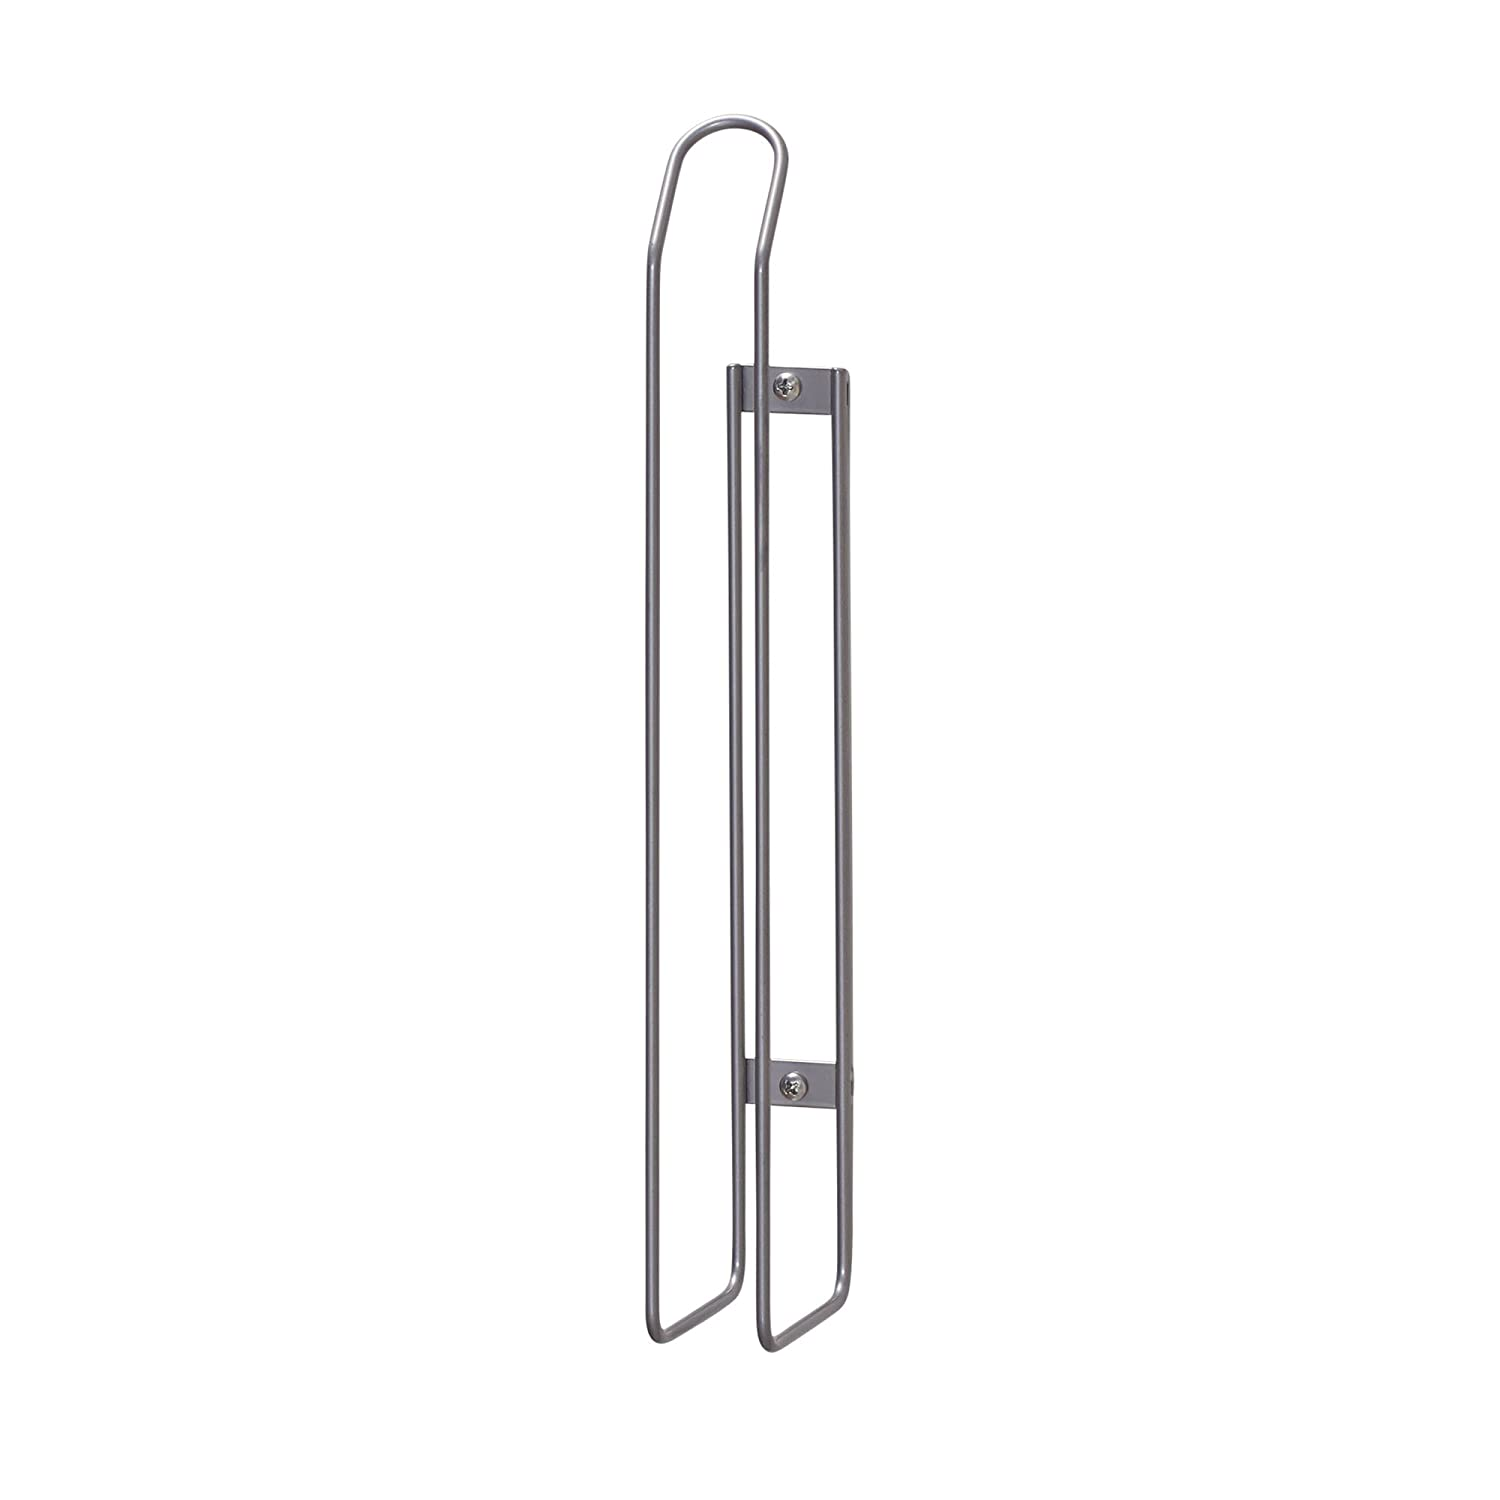 Household Essentials 1225-1 Mounted Paper Towel Holder | Mounts to Solid Cabinet Doors or Walls